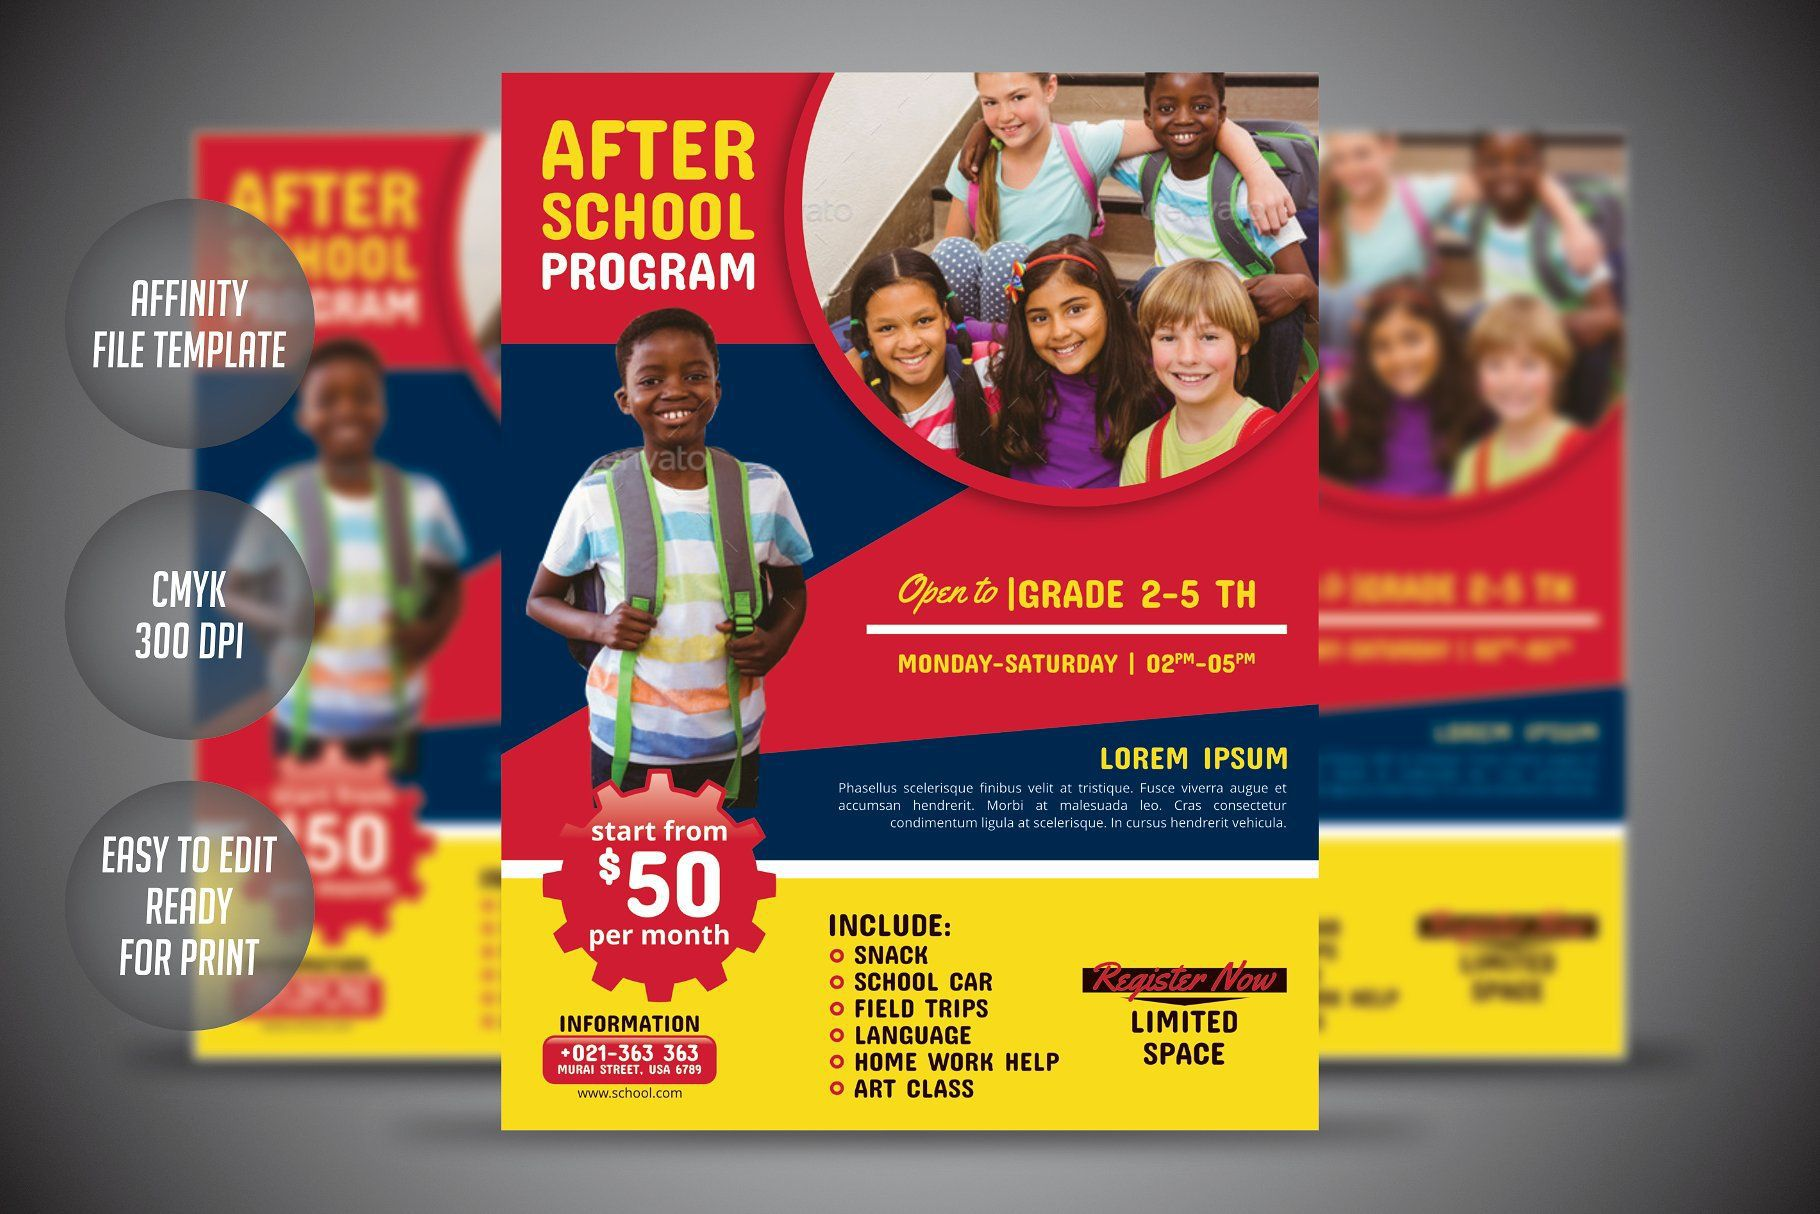 004 Fascinating Free After School Flyer Template Example  TemplatesFull